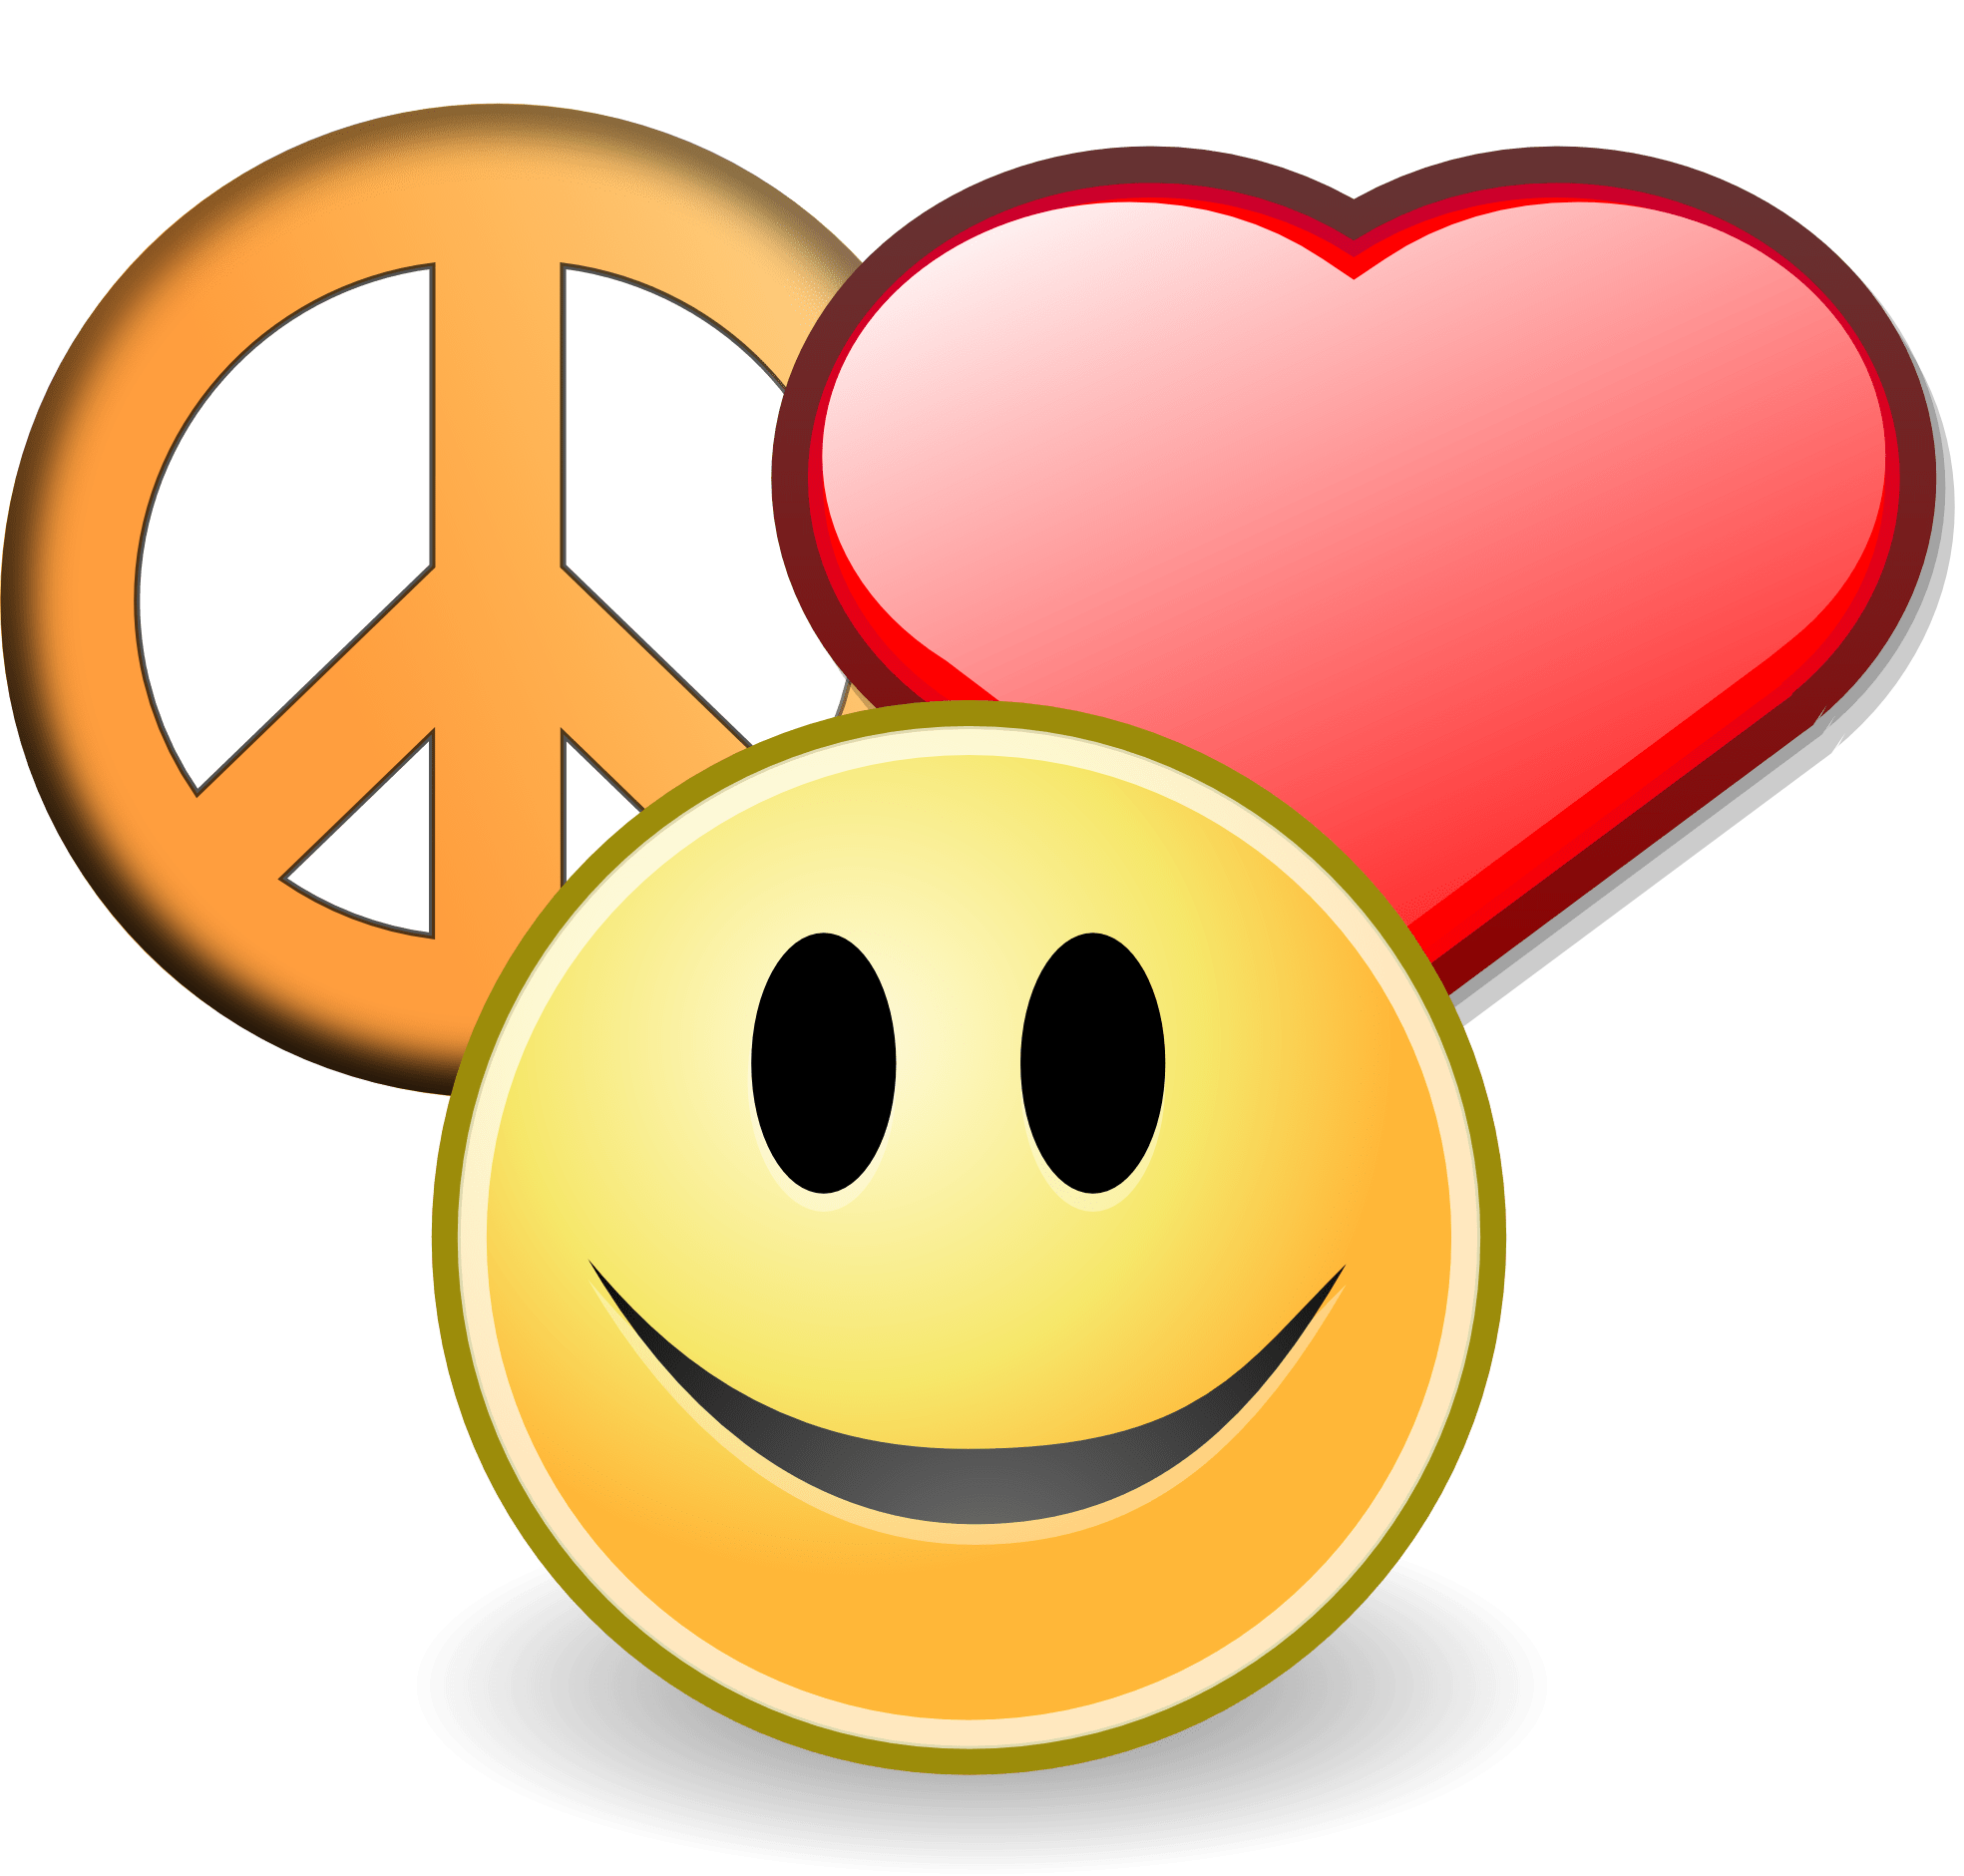 hight resolution of peace sign clip art free bing images visor image